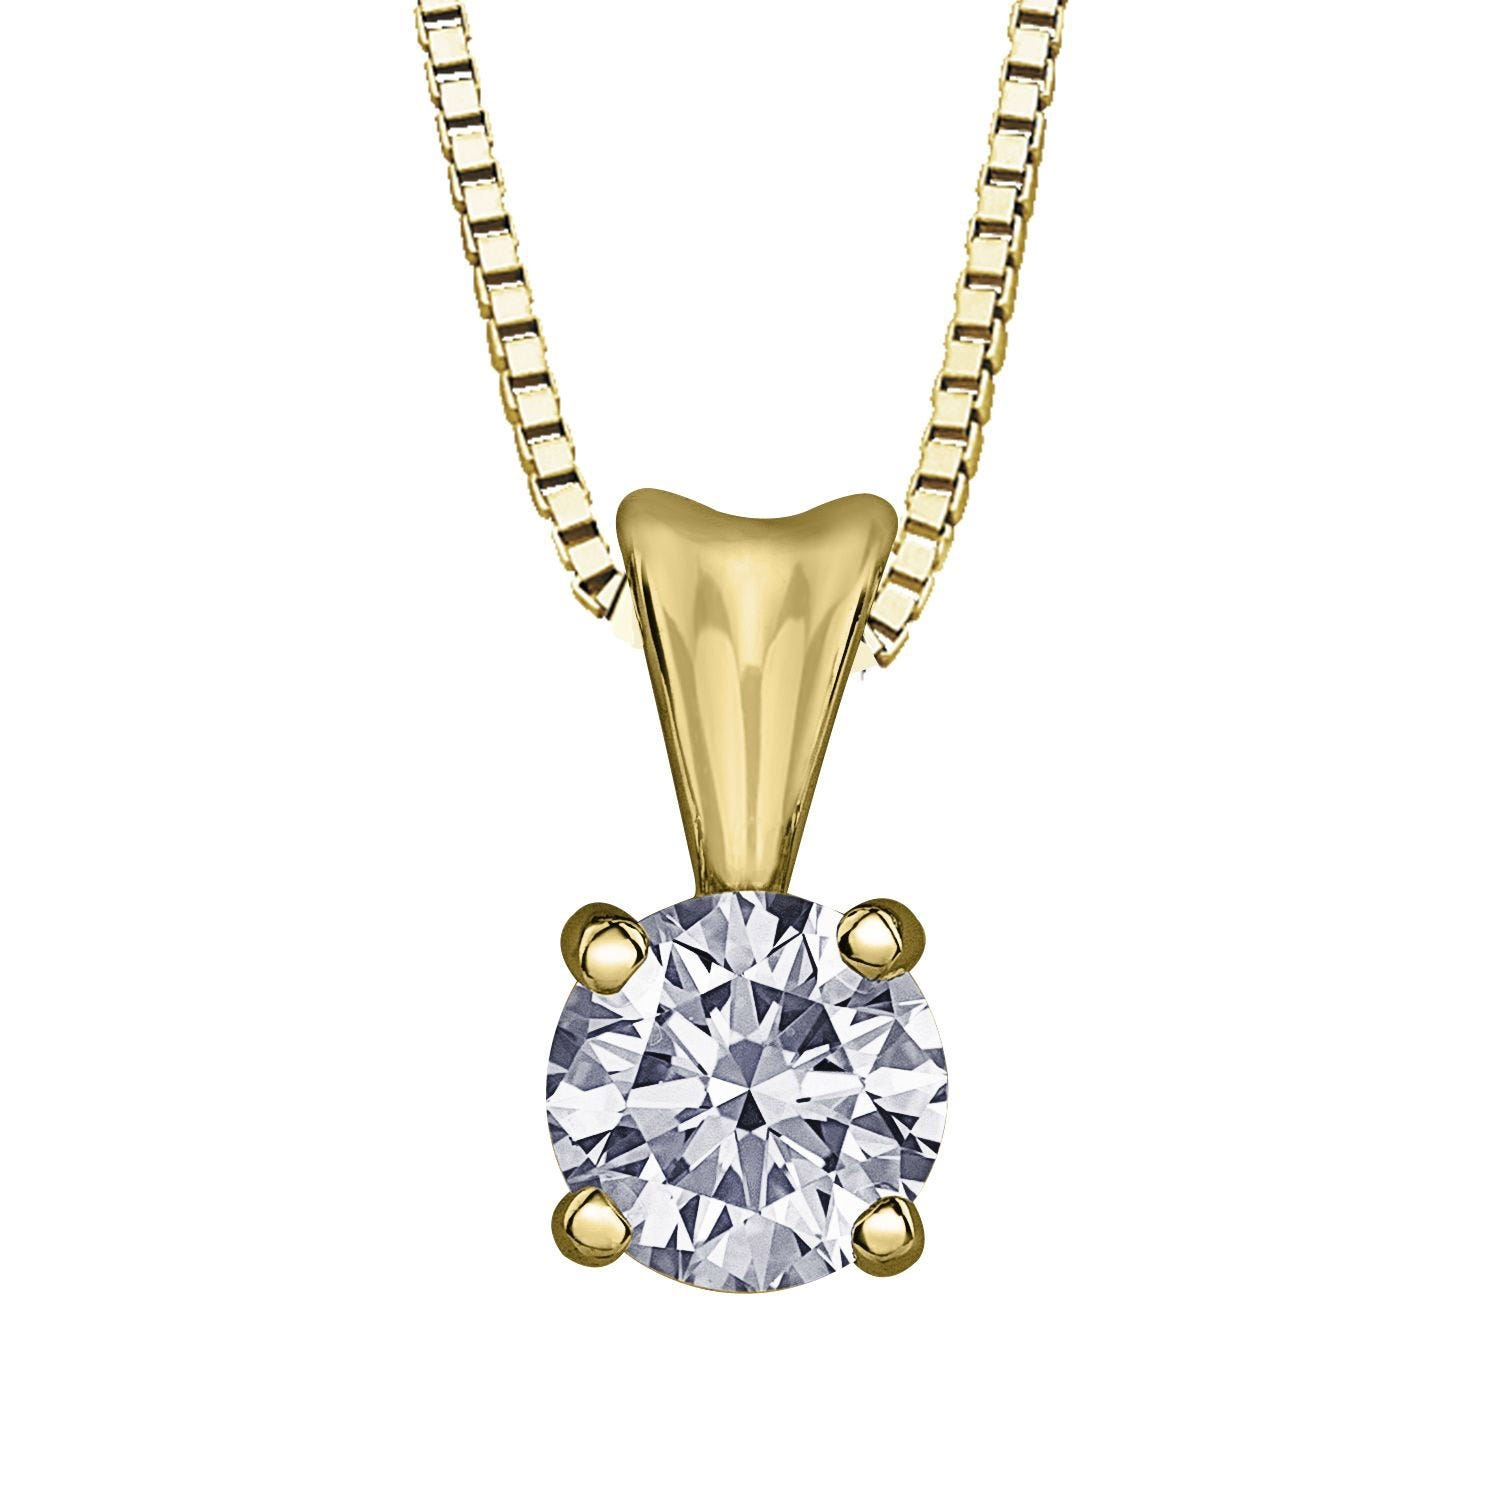 Northern Star Special Order 0.30ct Diamond 18ct Yellow Gold Pendant